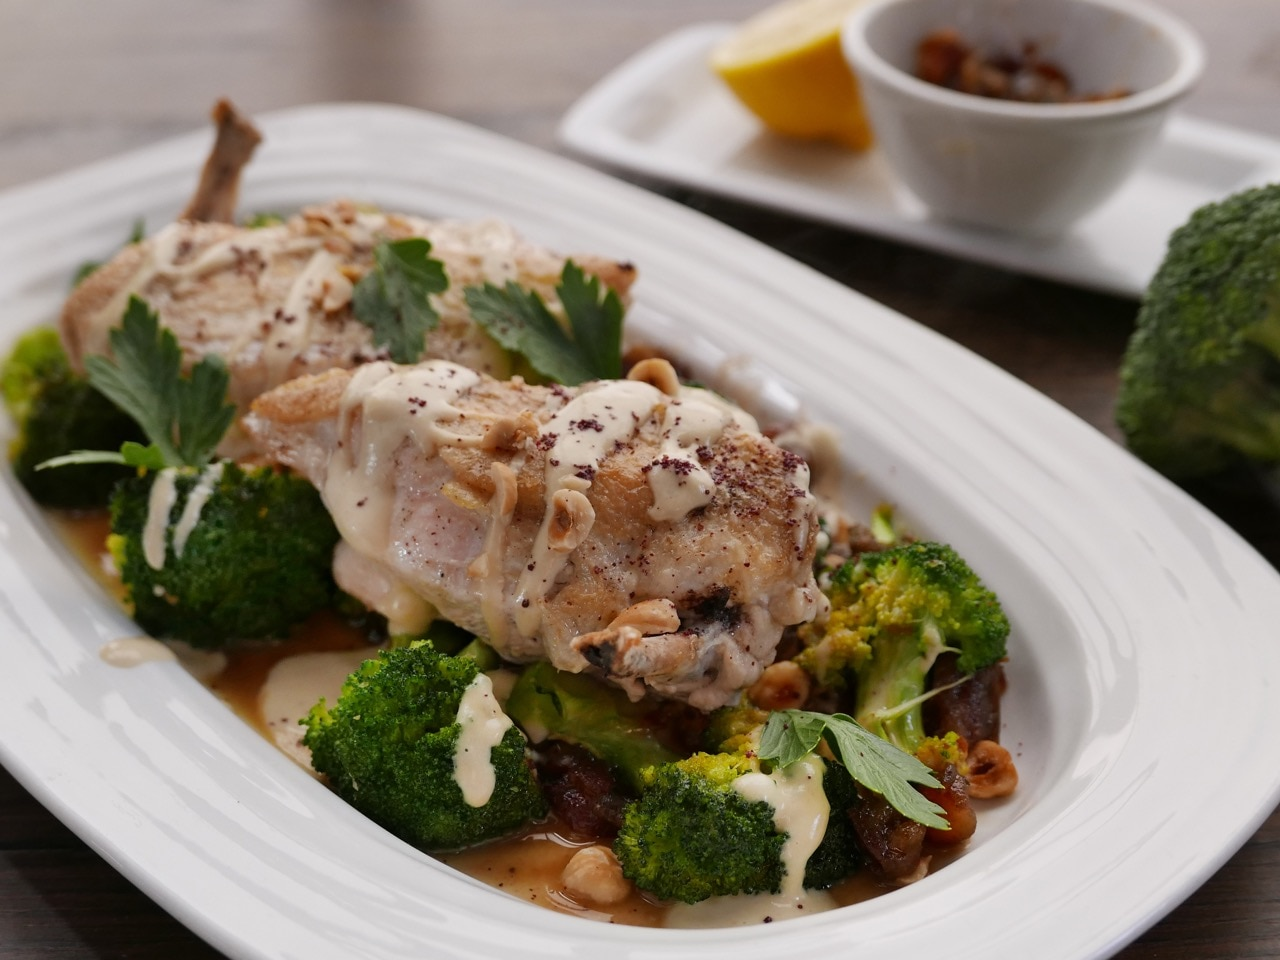 Chicken with Broccoli and Dates